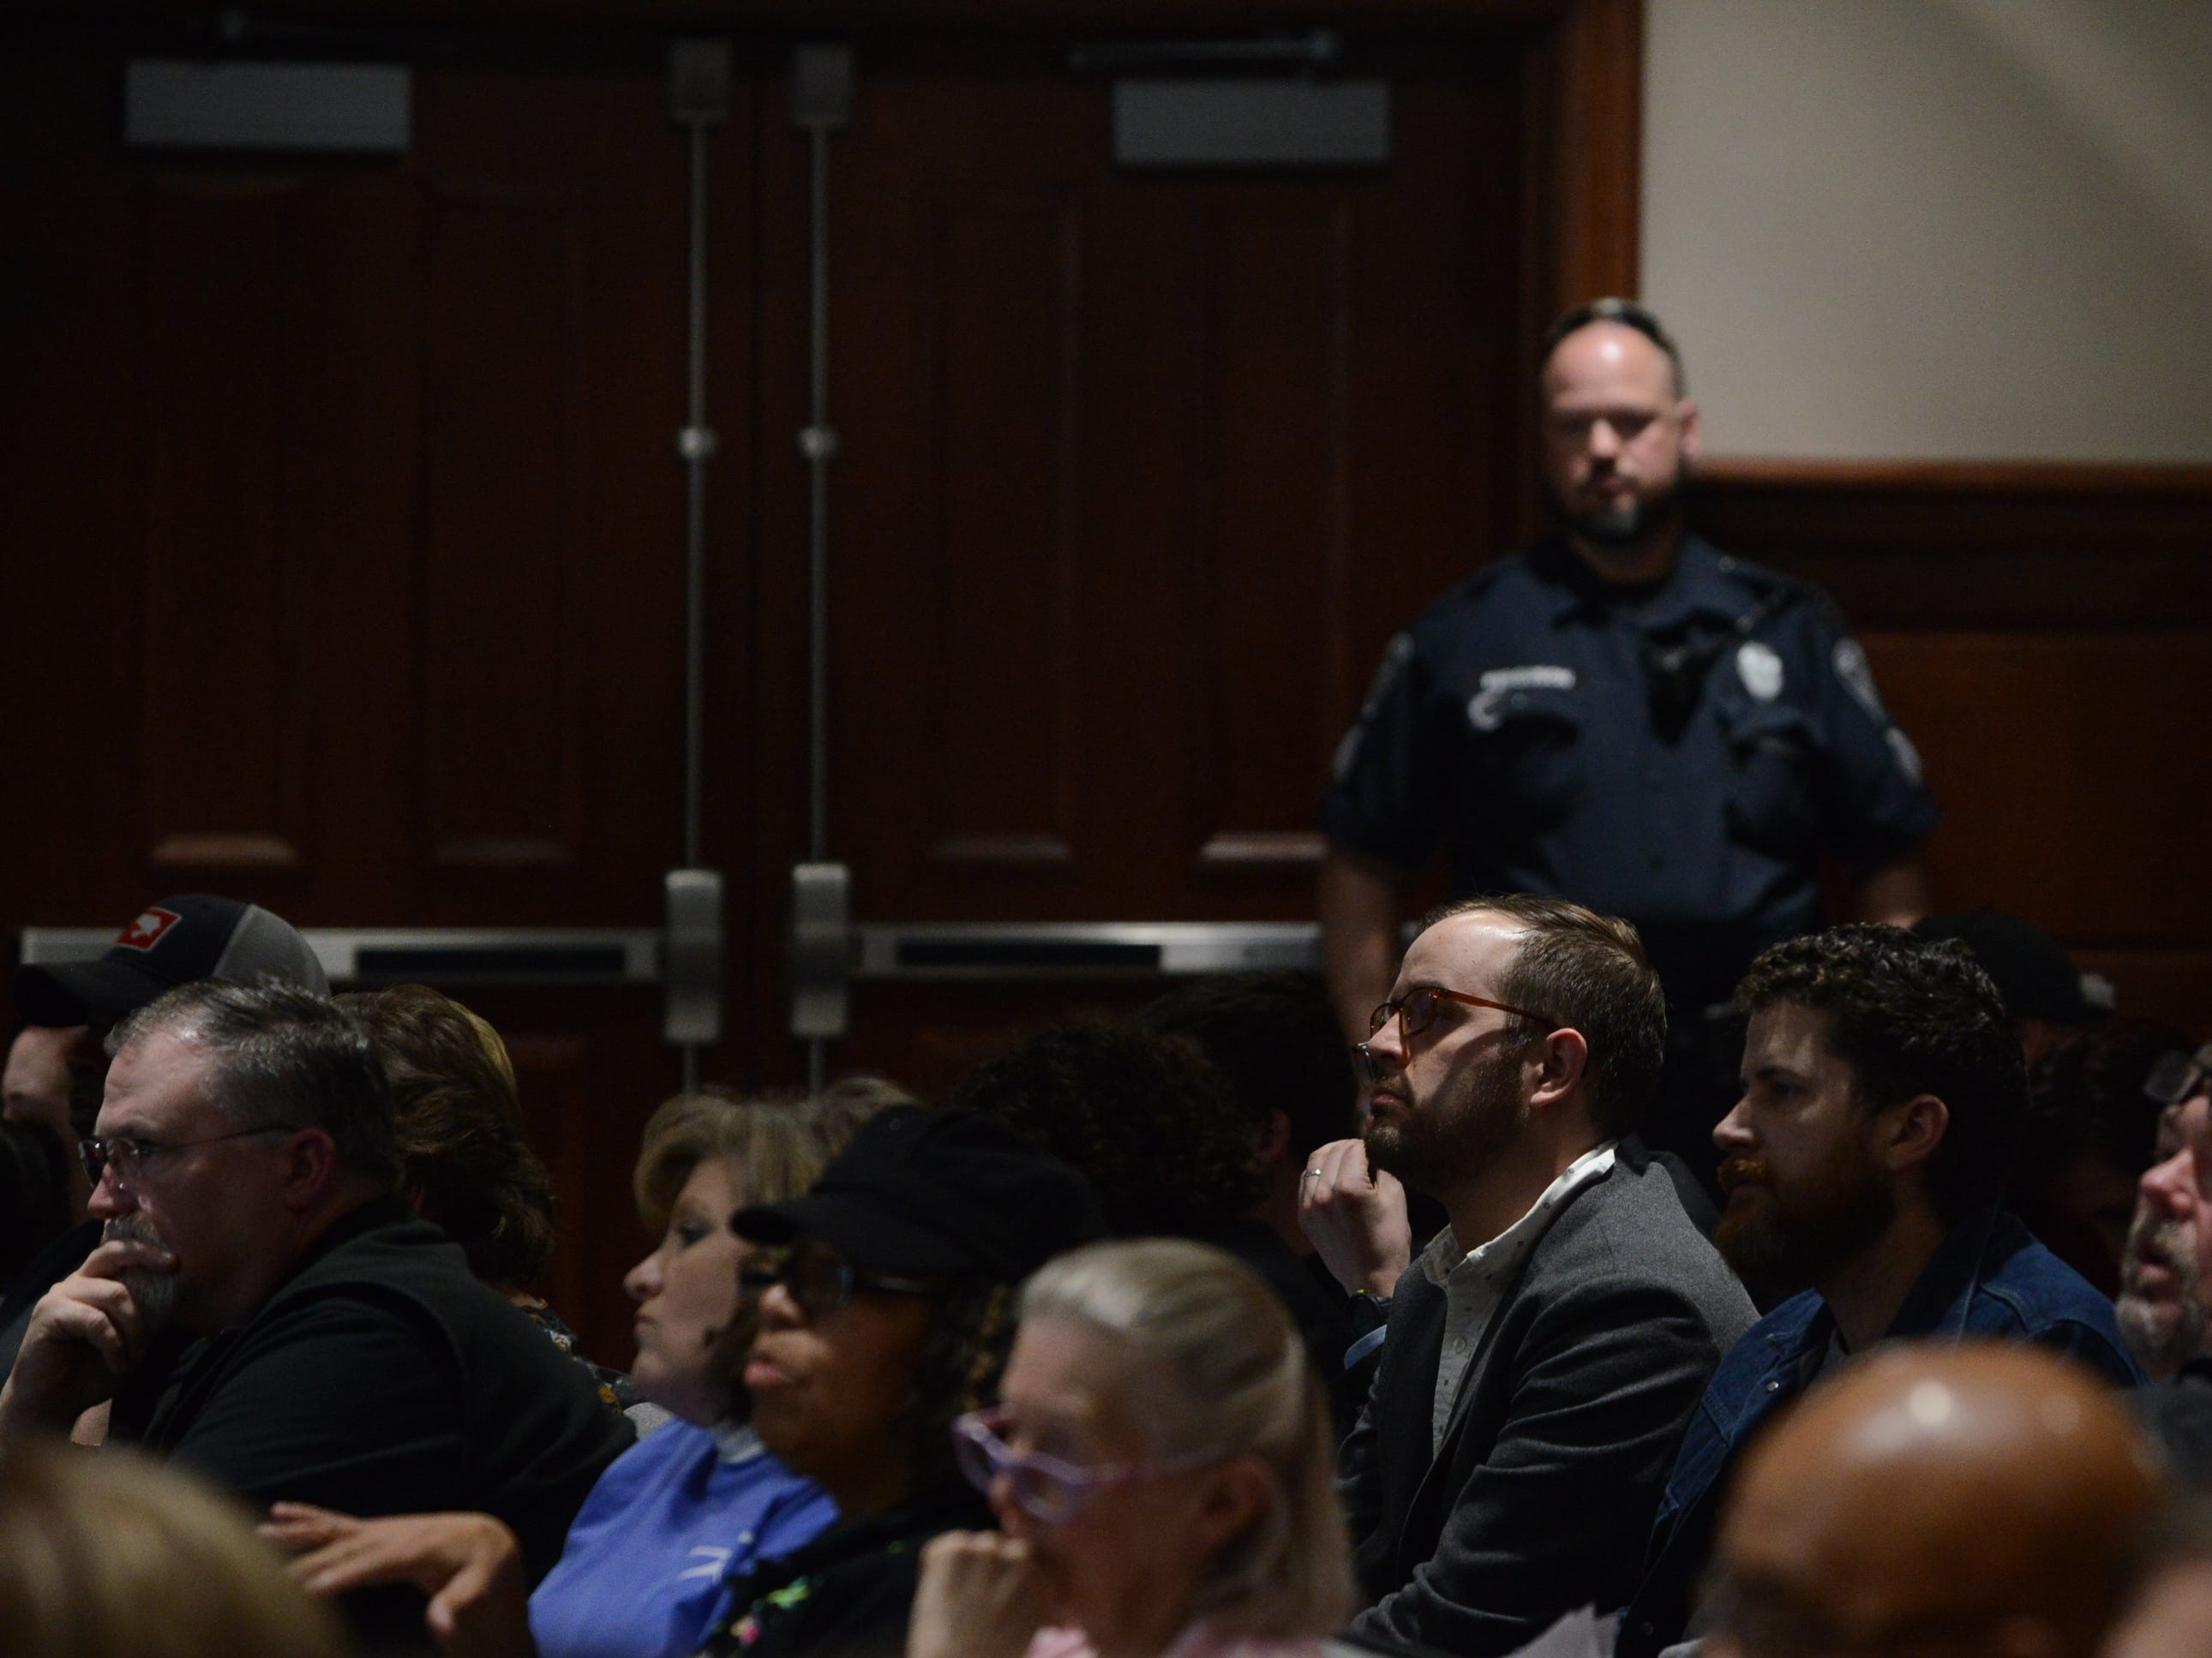 Audience members listen to board member deliberations while a Jackson Police Department officer stands near a meeting room door in the background at the JMC school board meeting at Jackson City Hall on Thursday night.